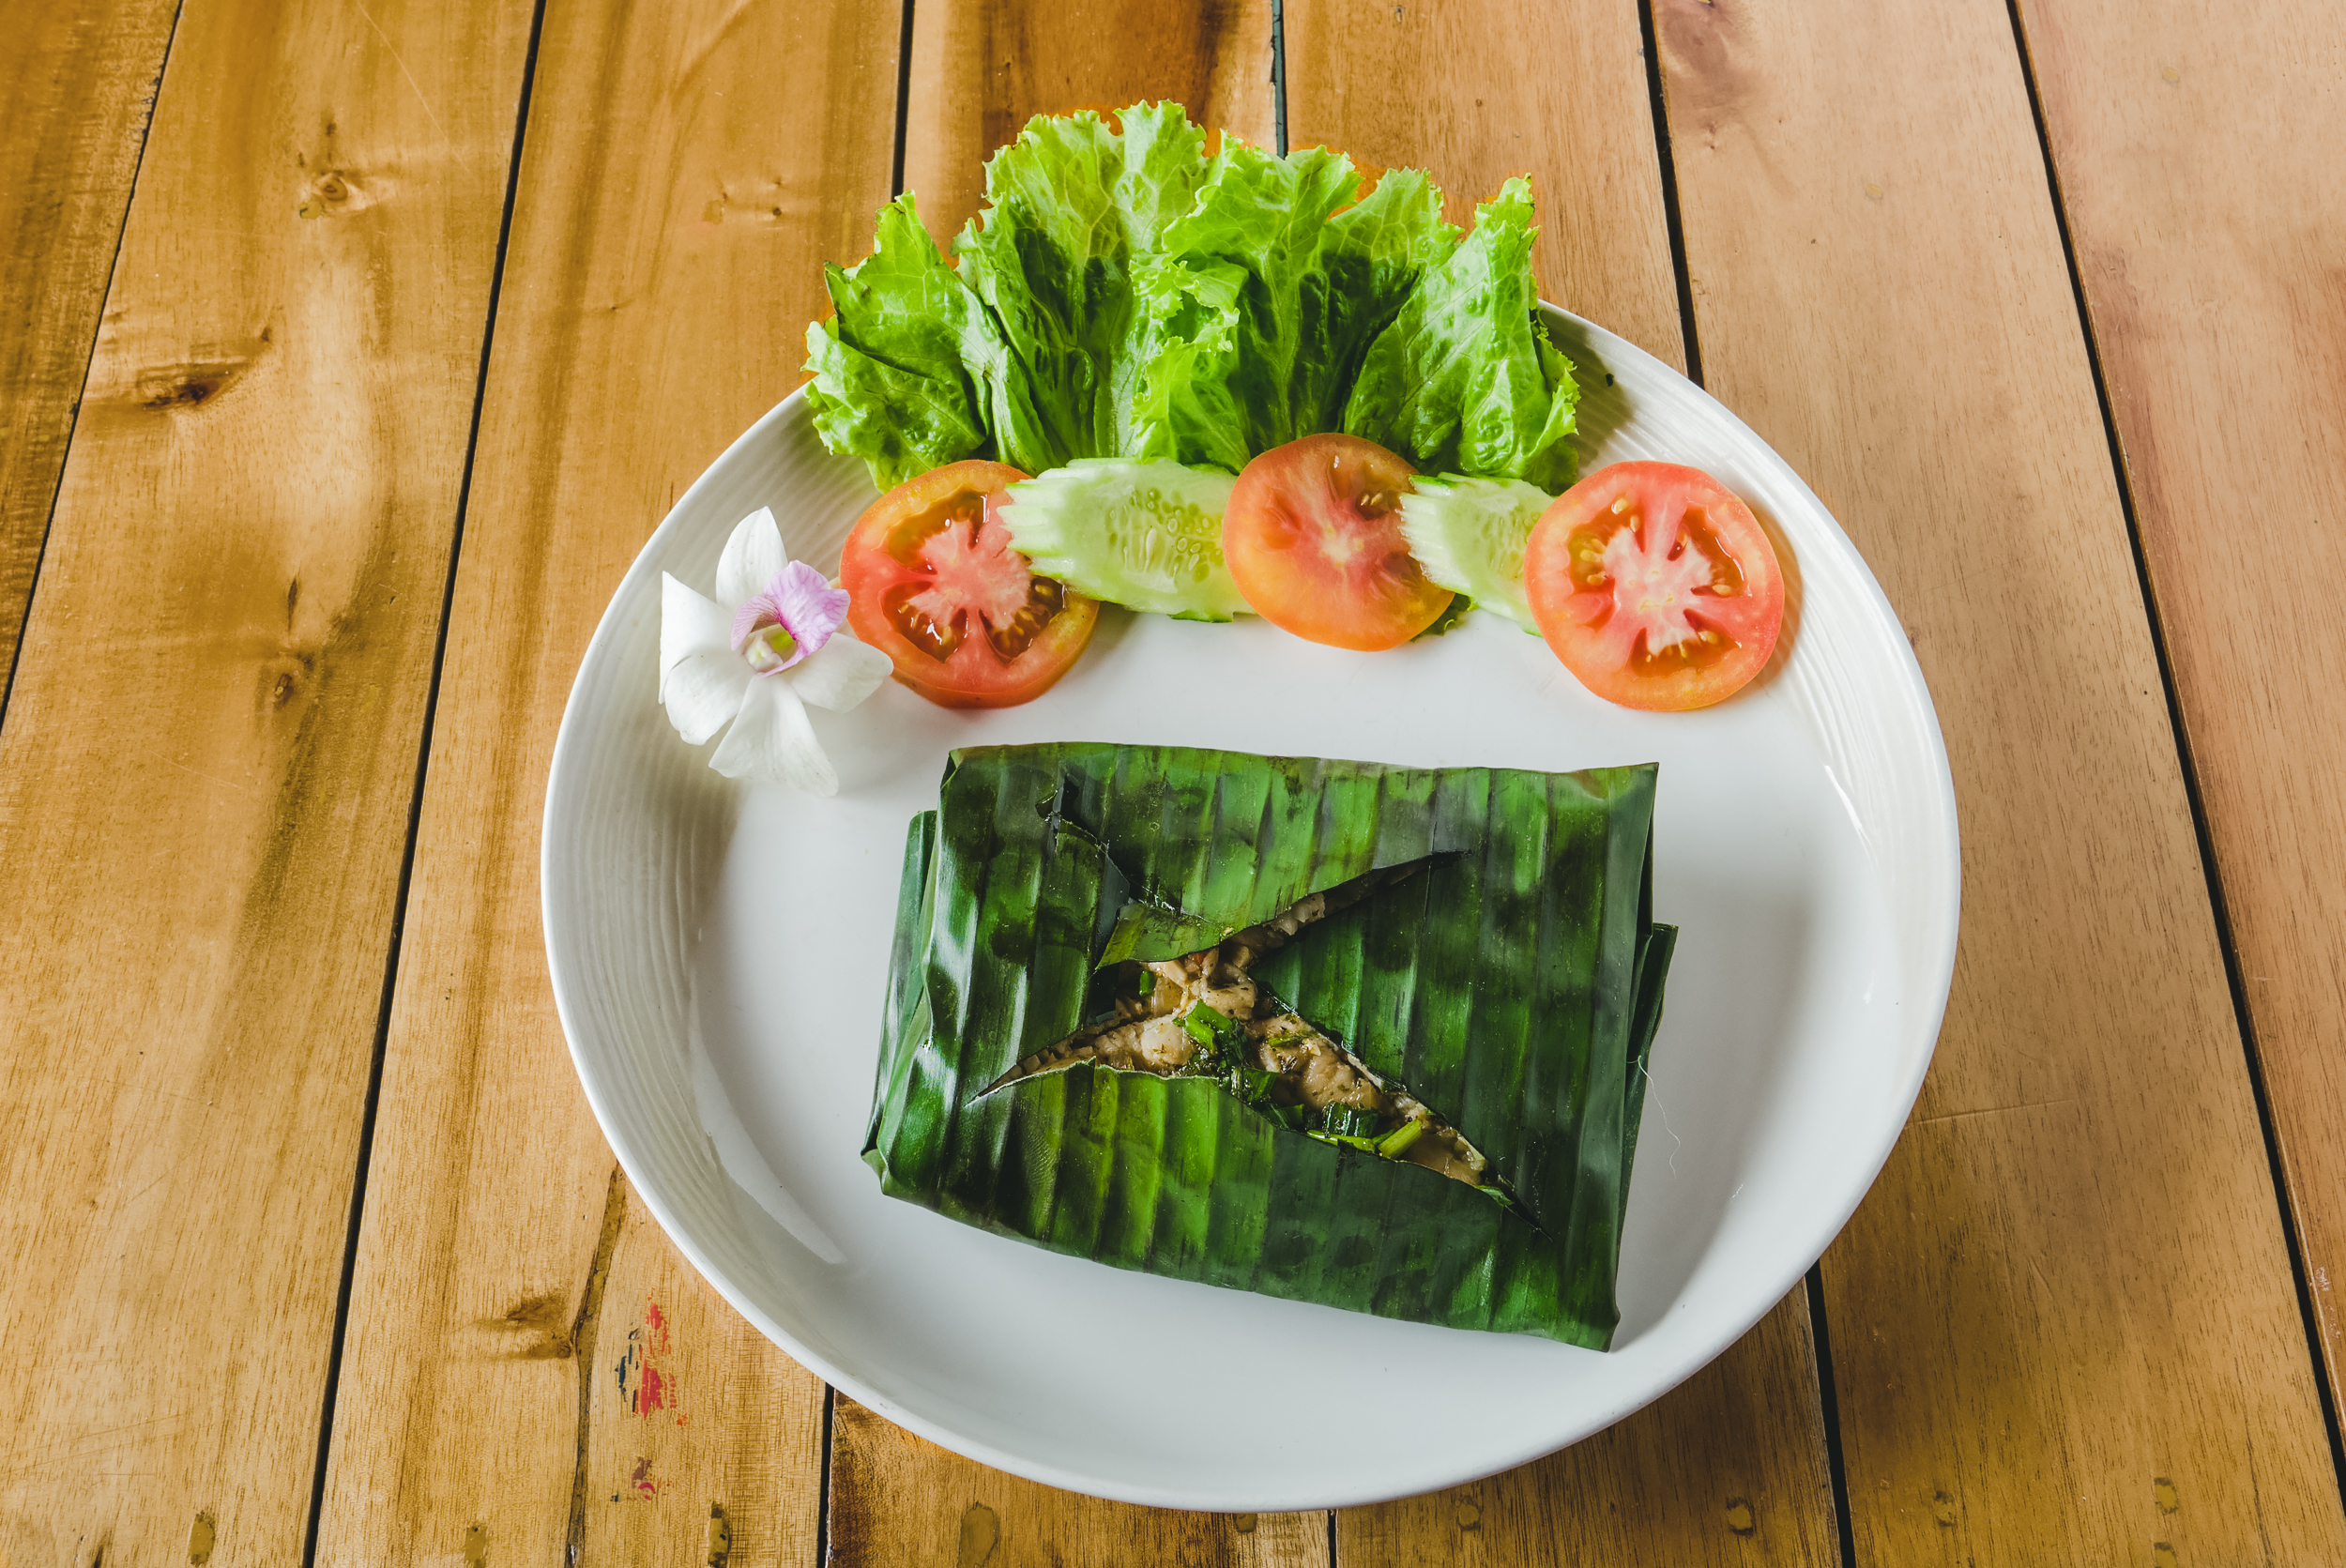 »BARRACUDA IN BANANA LEAF« - People from all over the area come to our restaurant to enjoy our specialty:a fresh barracuda filet steamed in a recently chopped banana leaf with a combination of herbs and spices. Try it yourself and be prepared to order it not only once.